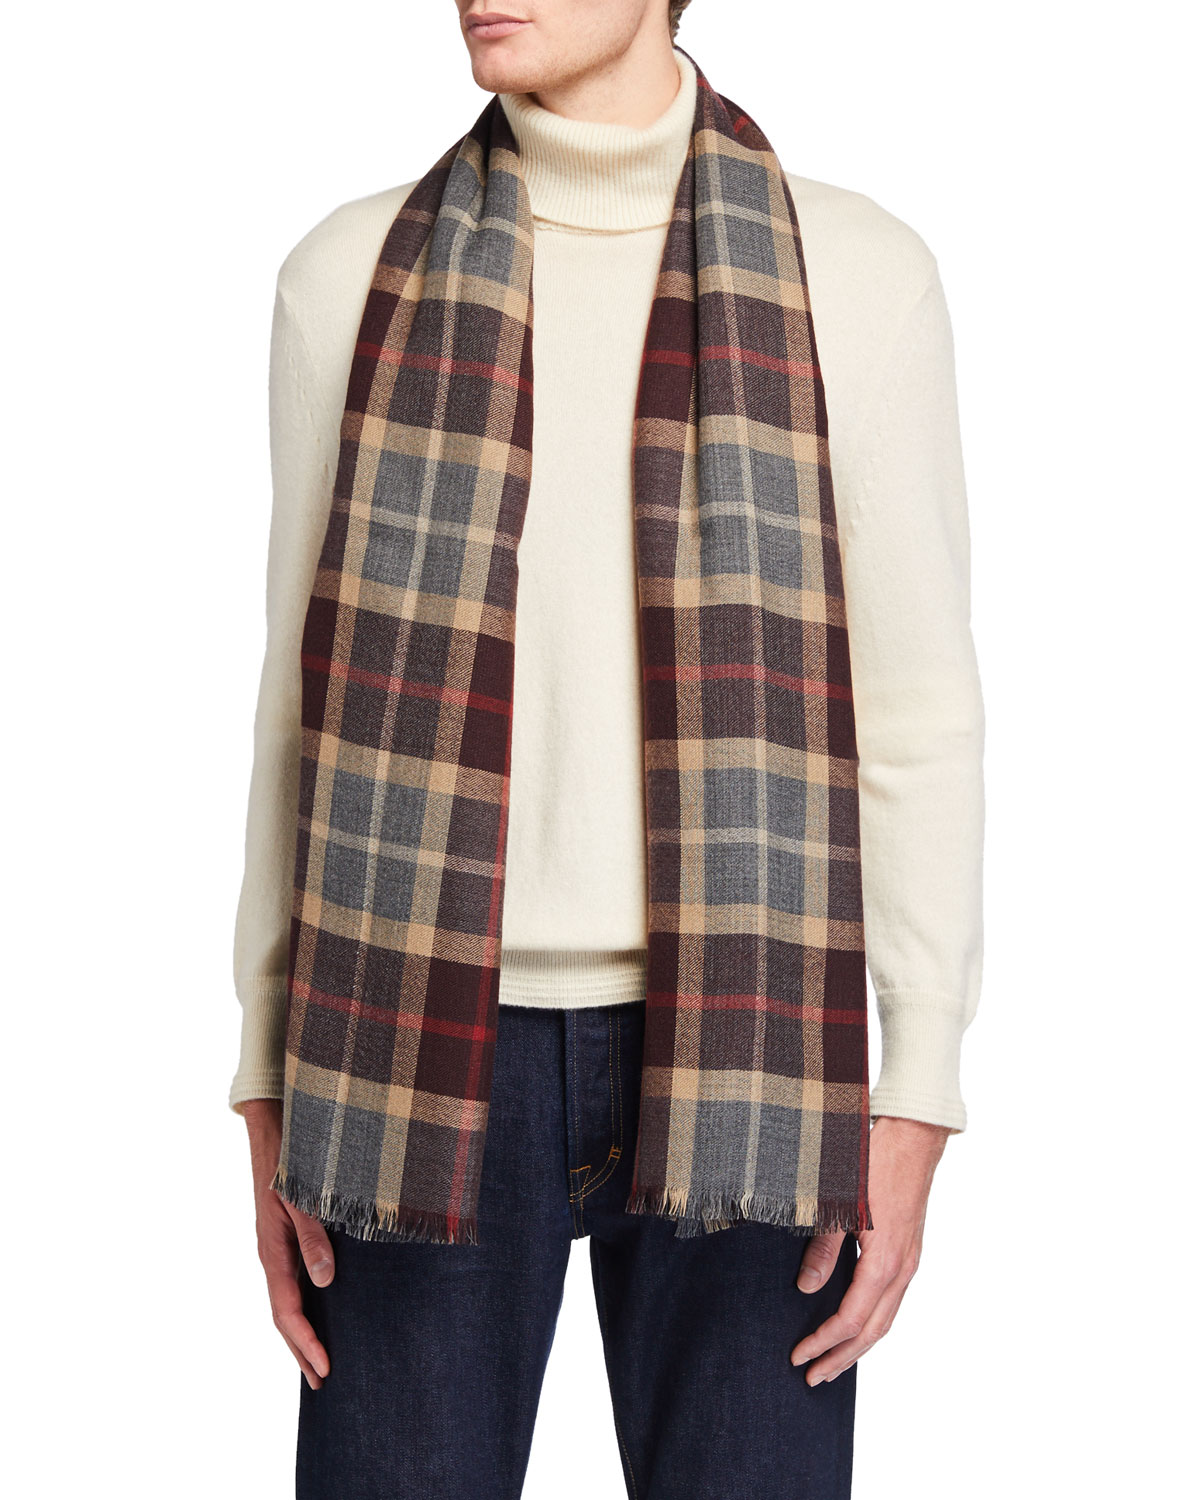 Loro Piana Men's Baily Plaid Cashmere Scarf In Red/gray